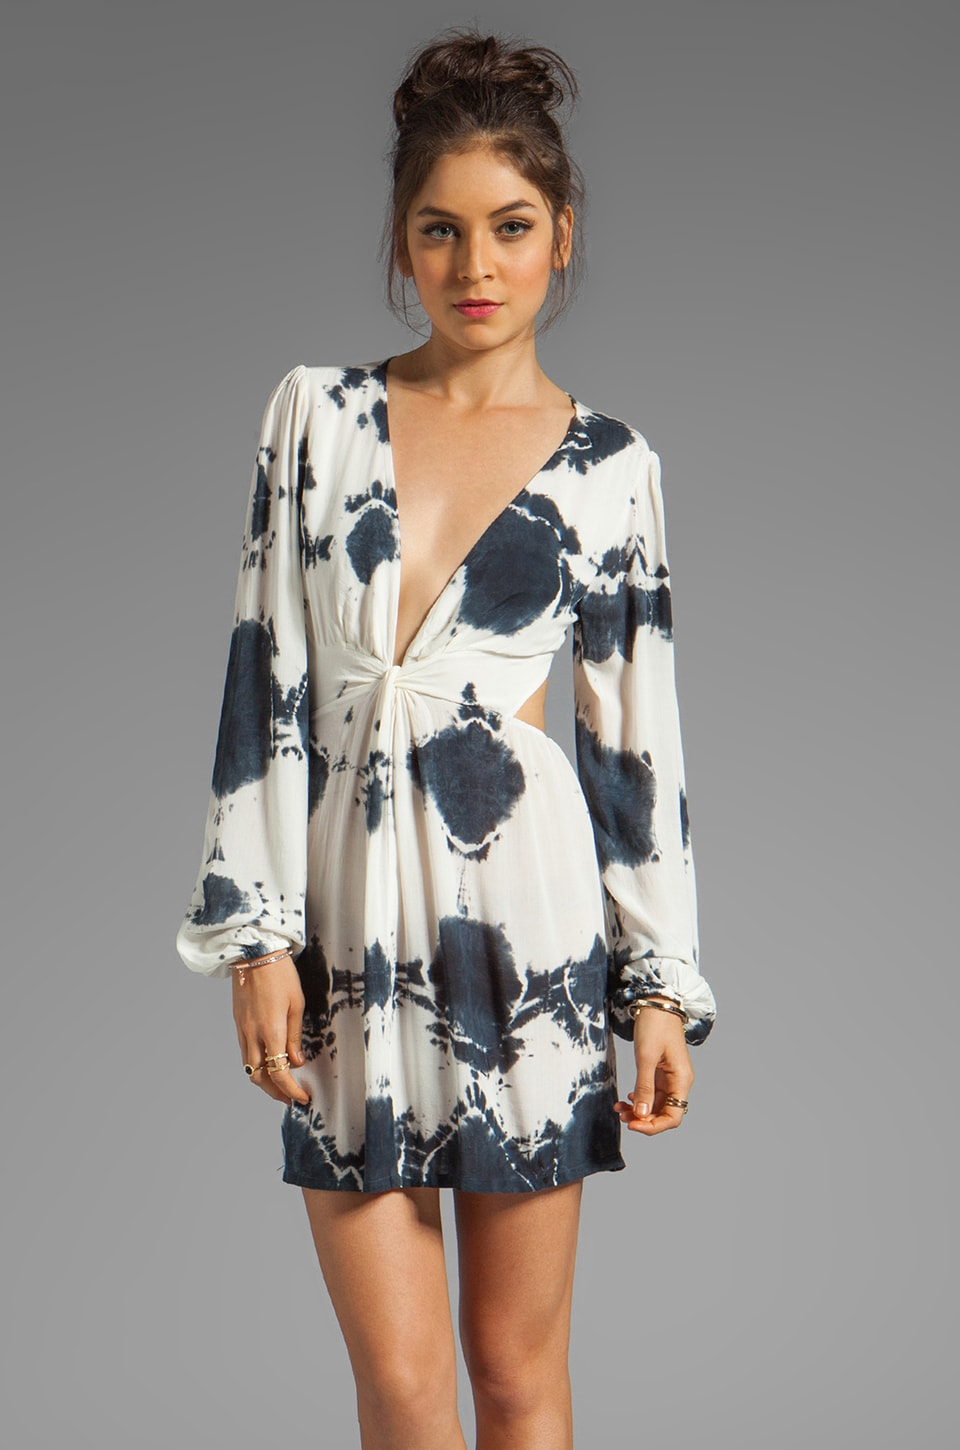 Blu Moon Short Bell Sleeve Twist Dress in Black and White Tie Dye